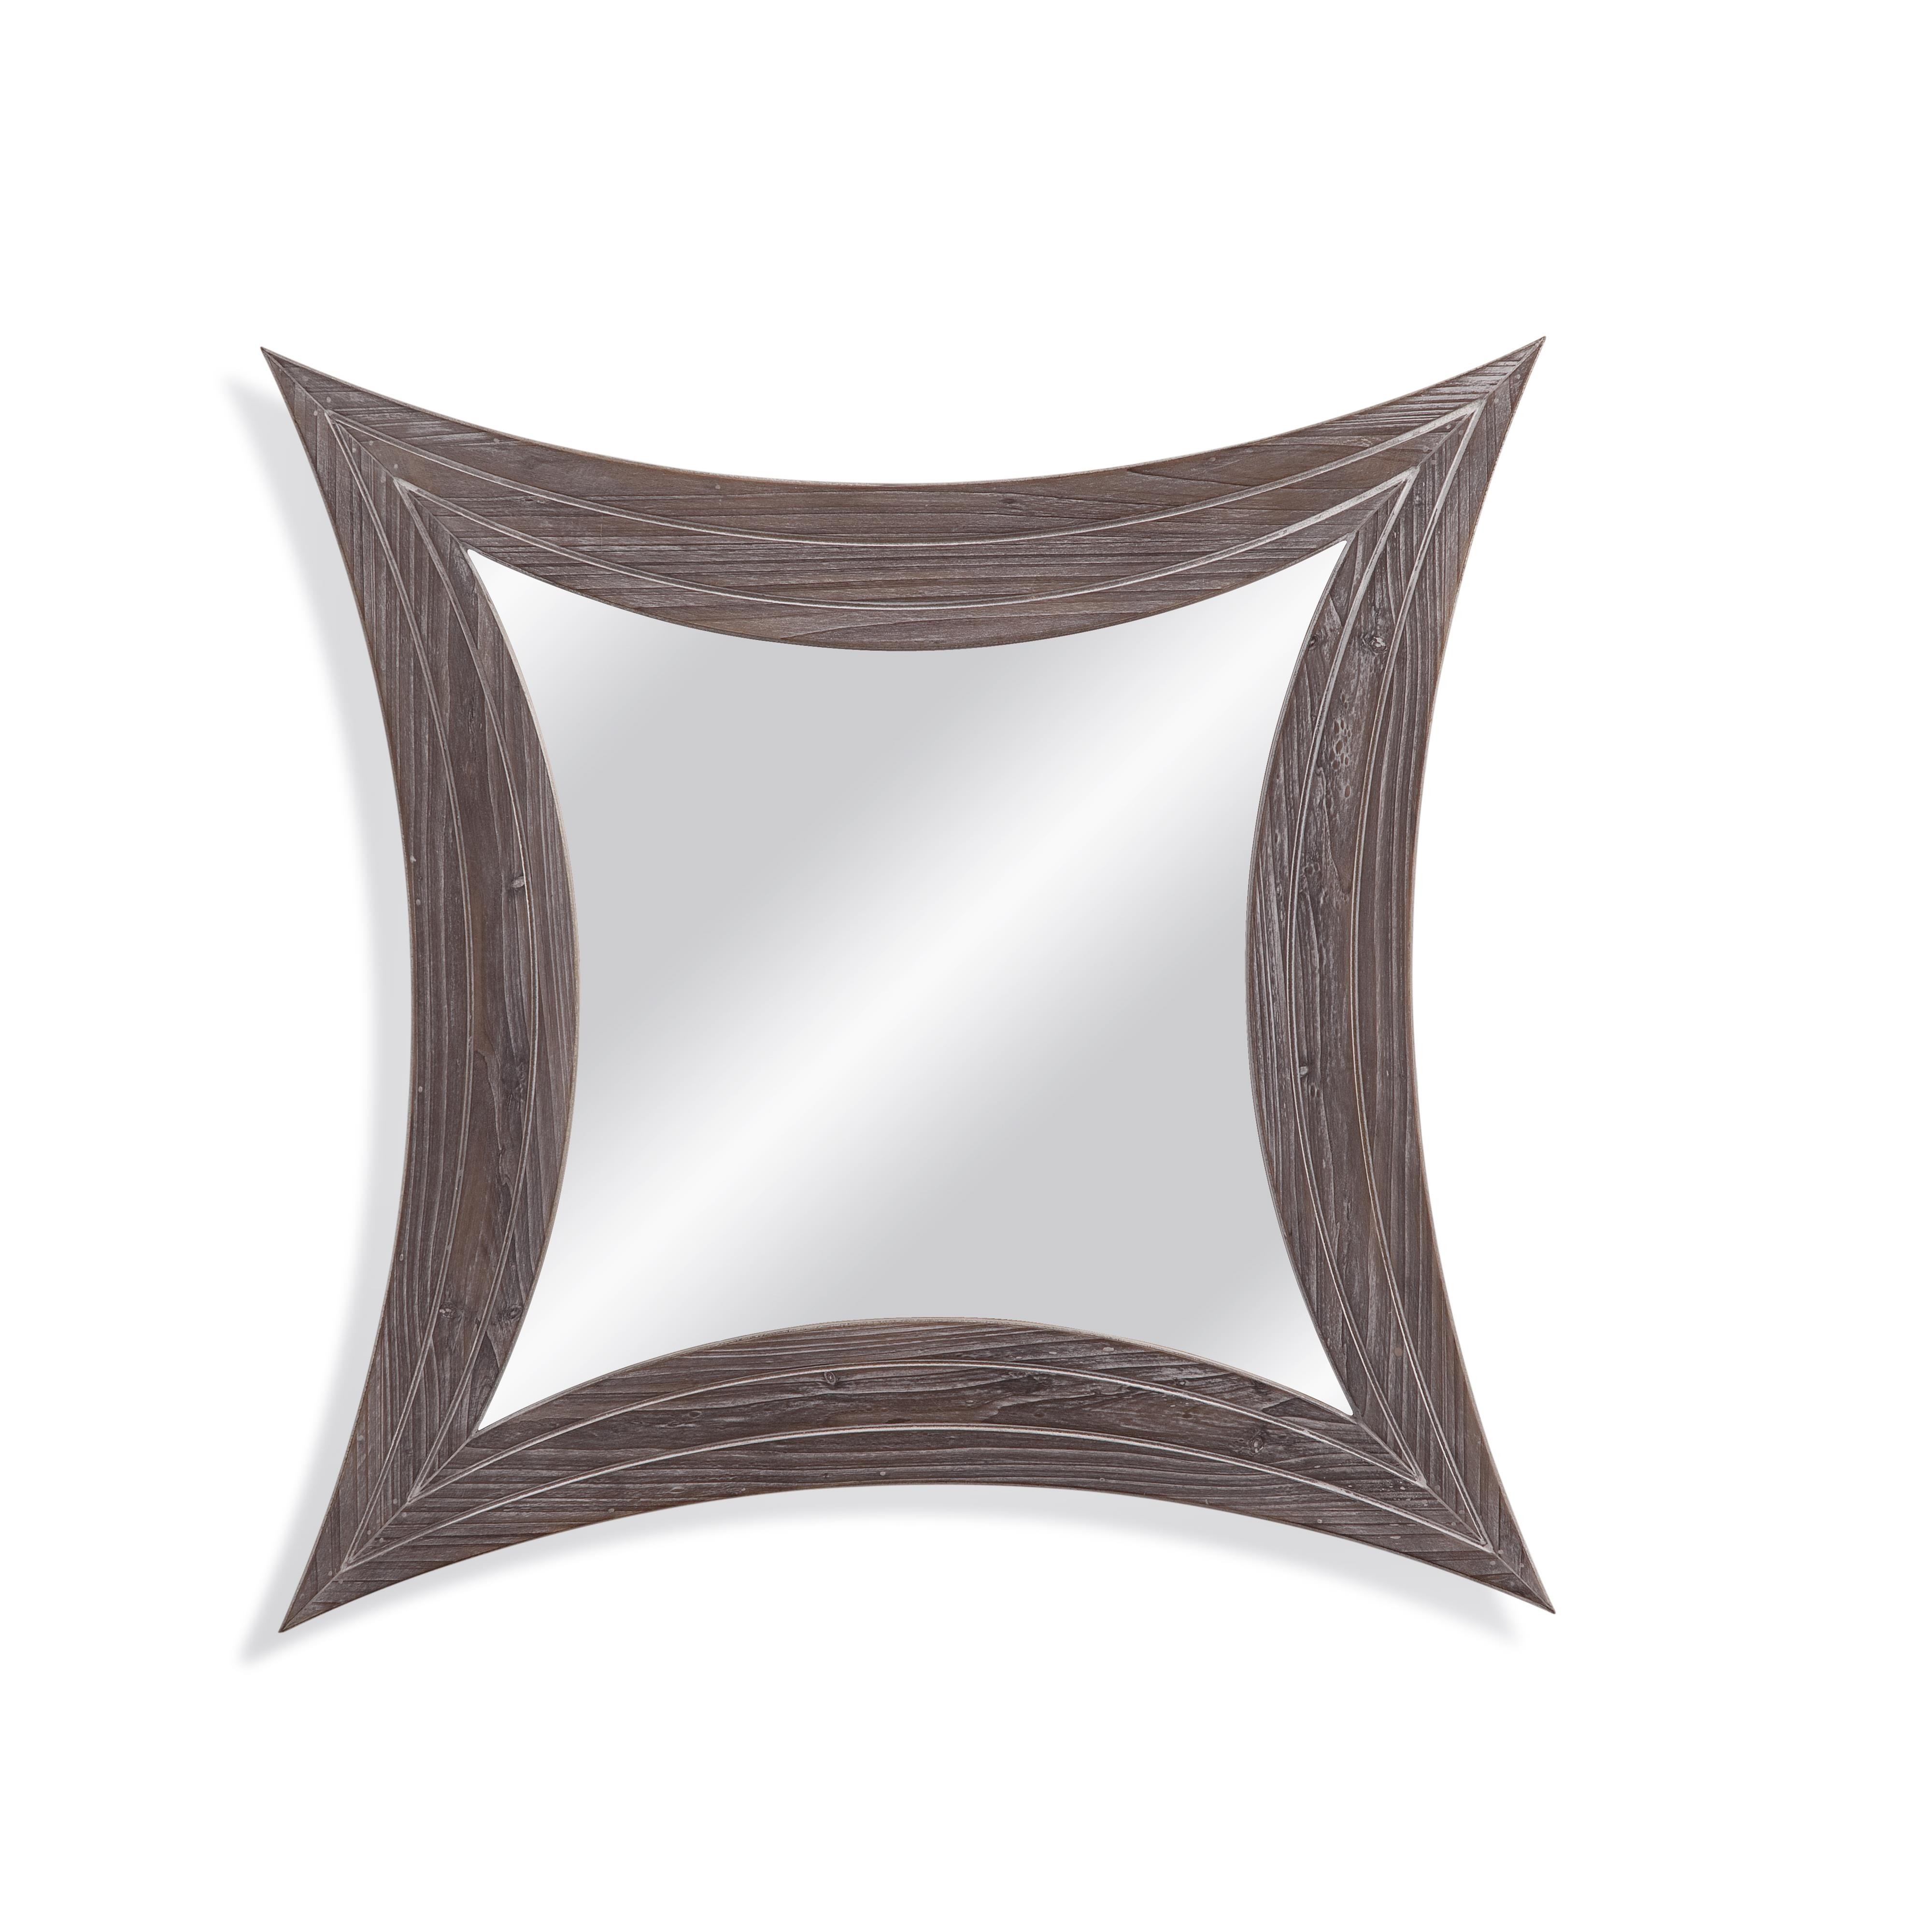 Belgian Luxe Atwater Wall Mirror by Bassett Mirror at Alison Craig Home Furnishings